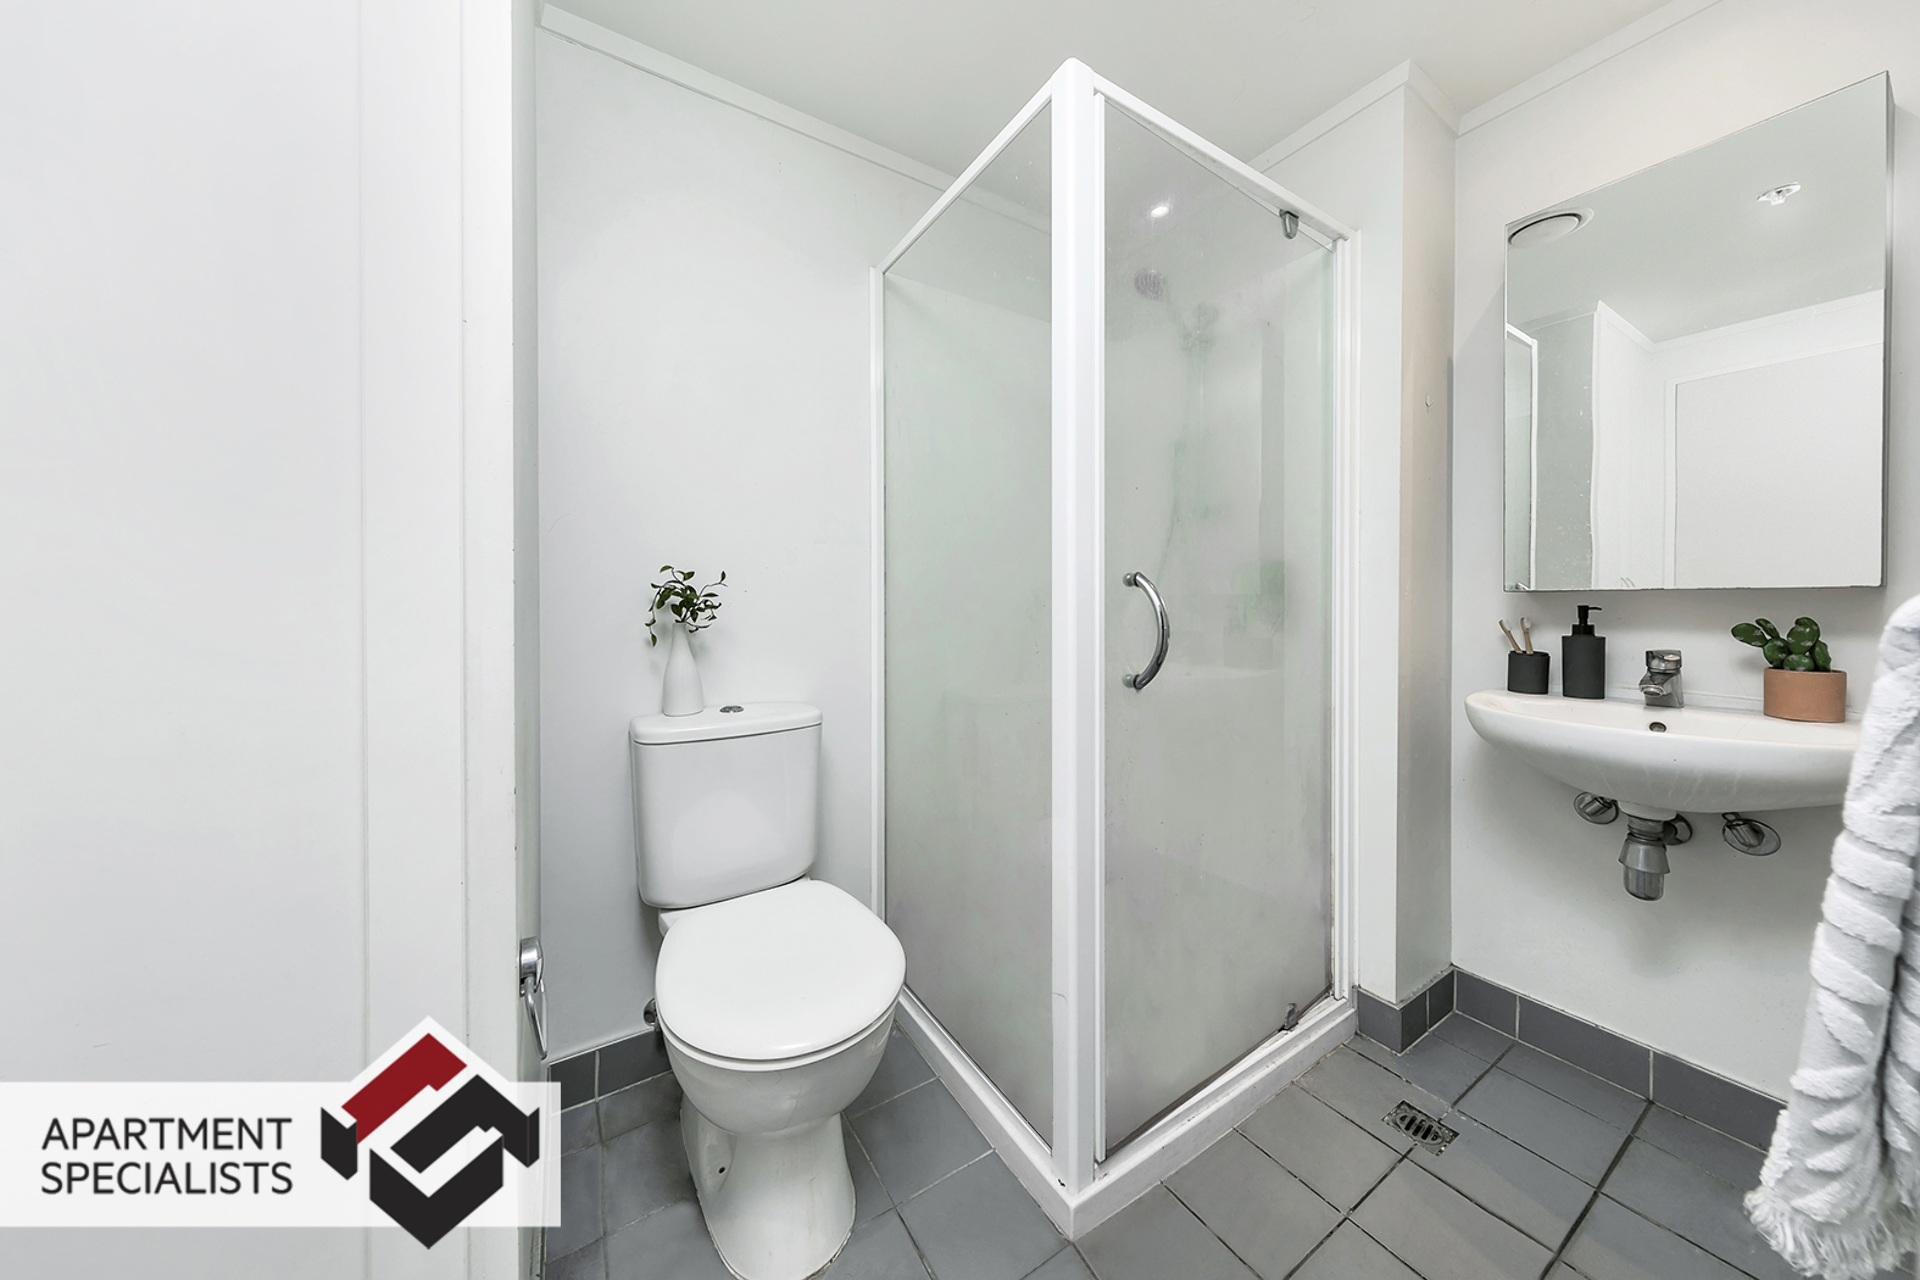 9 | 207 Federal Street, City Centre | Apartment Specialists